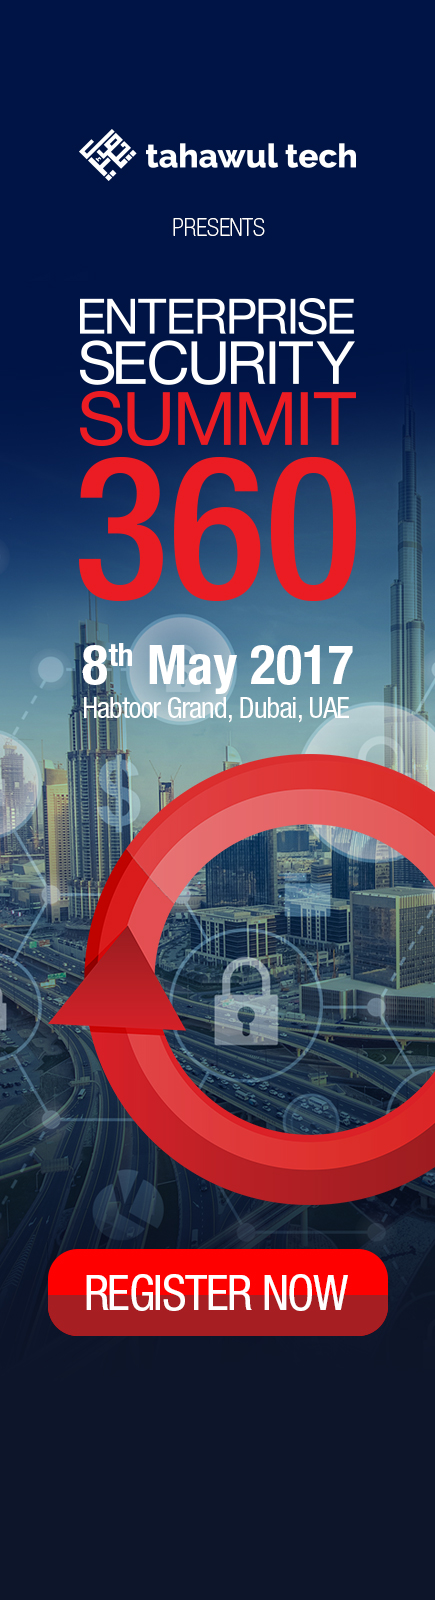 REGISTER NOW | ENTERPRISE SECURITY SUMMIT 360 2017